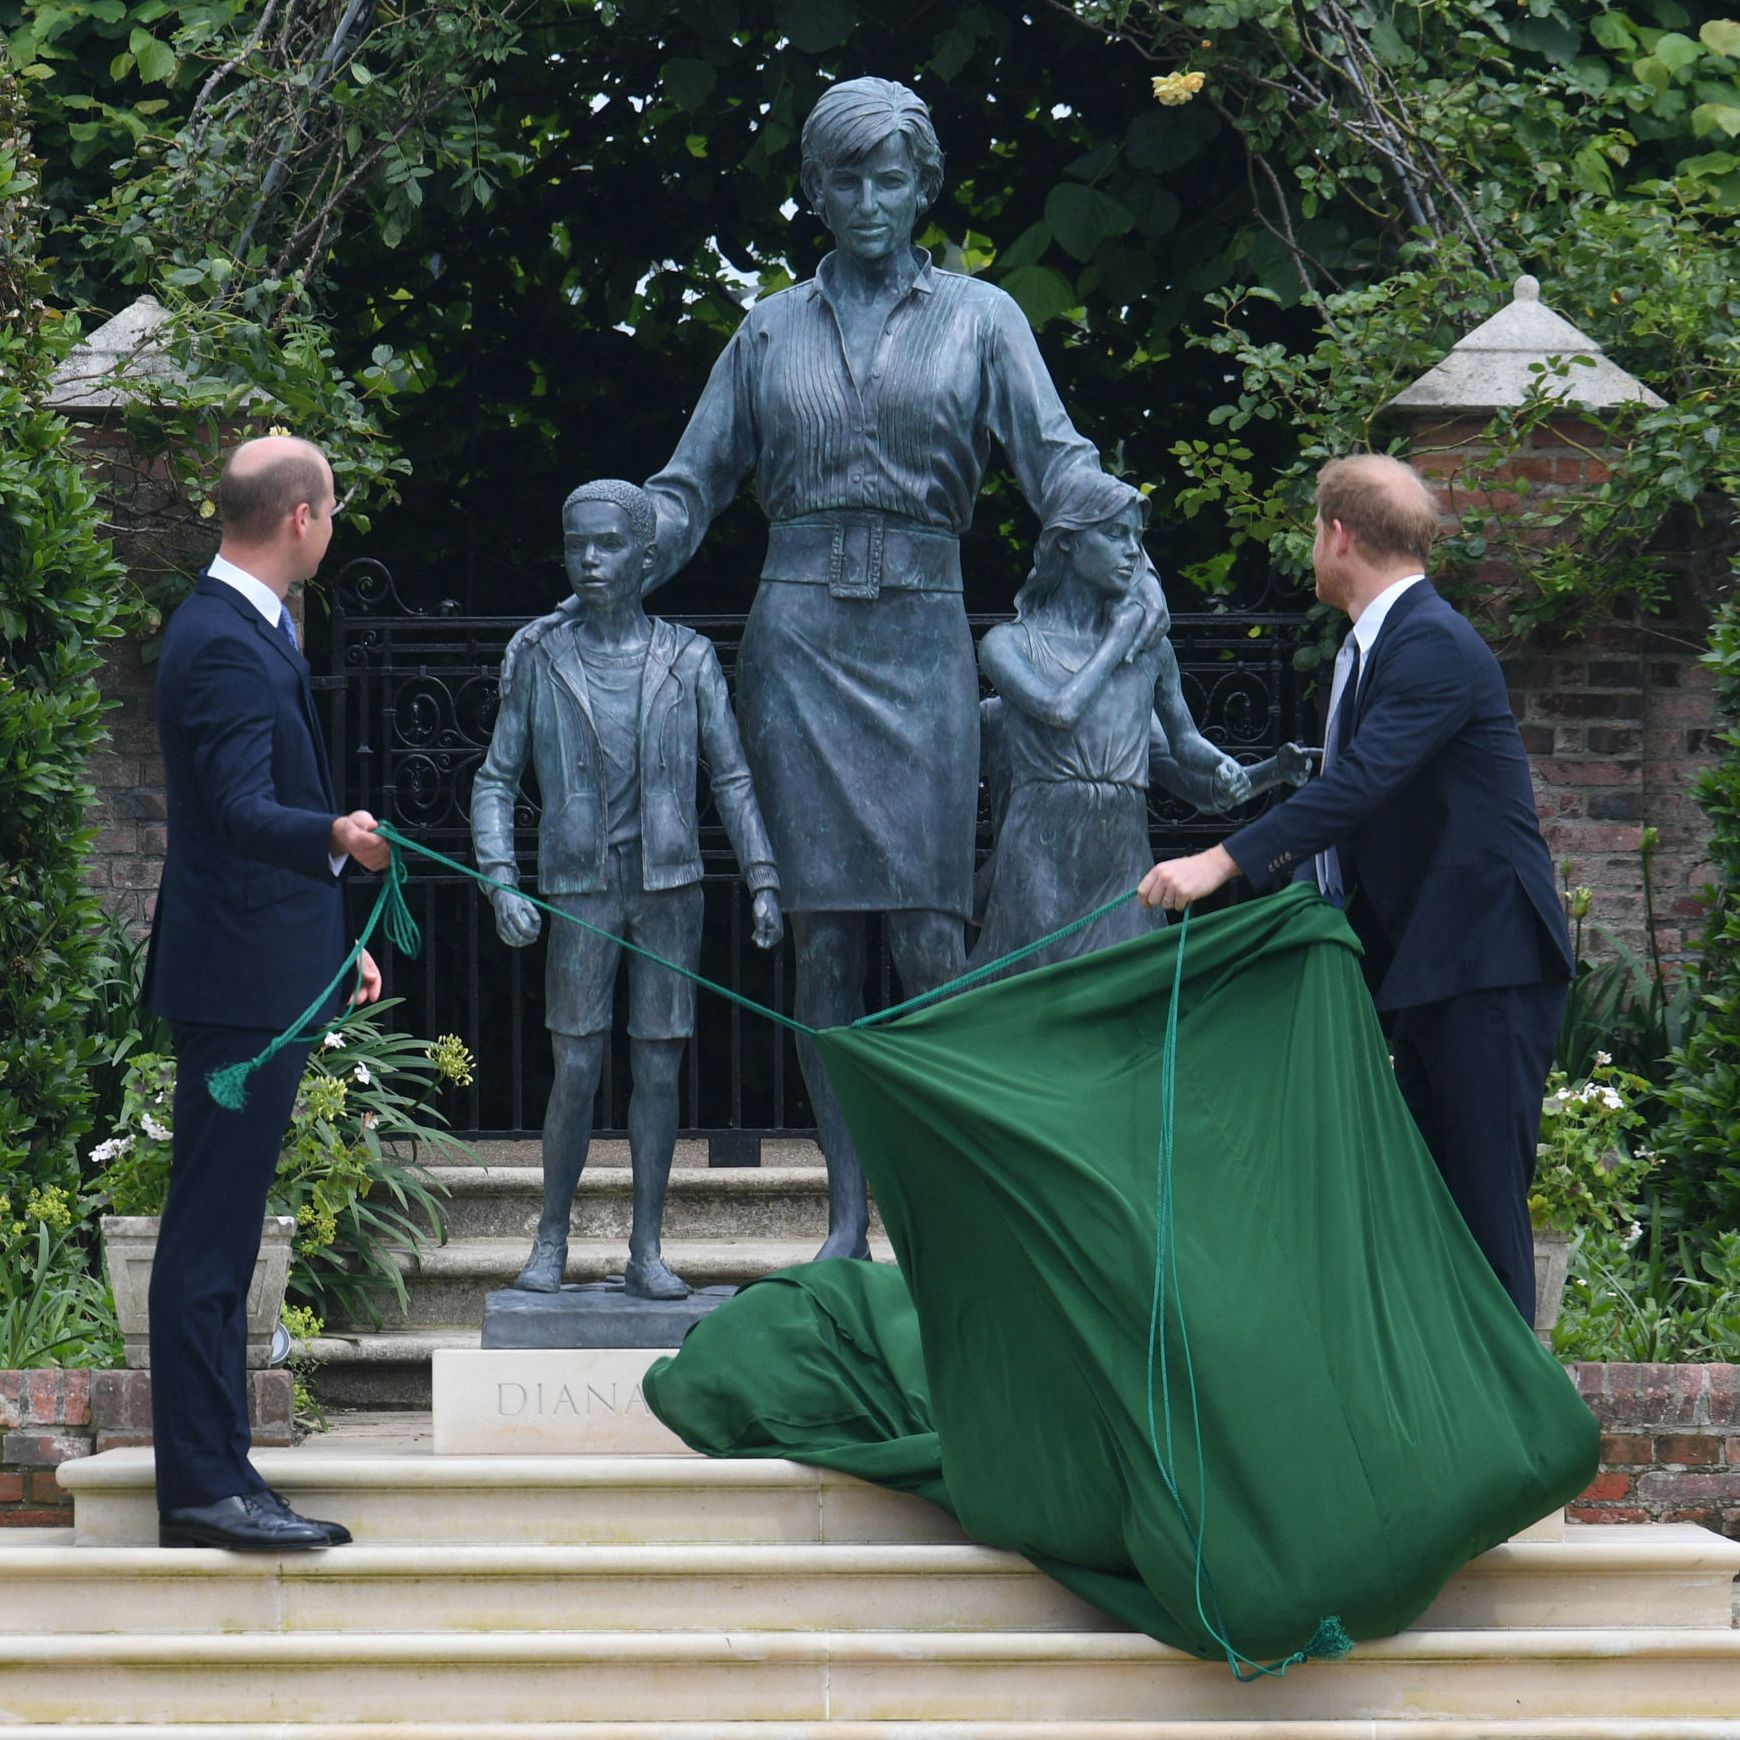 The Princess Diana Statue Unveiling Was an Emotional Moment as the Mood in Kensington Gardens Was Reflective